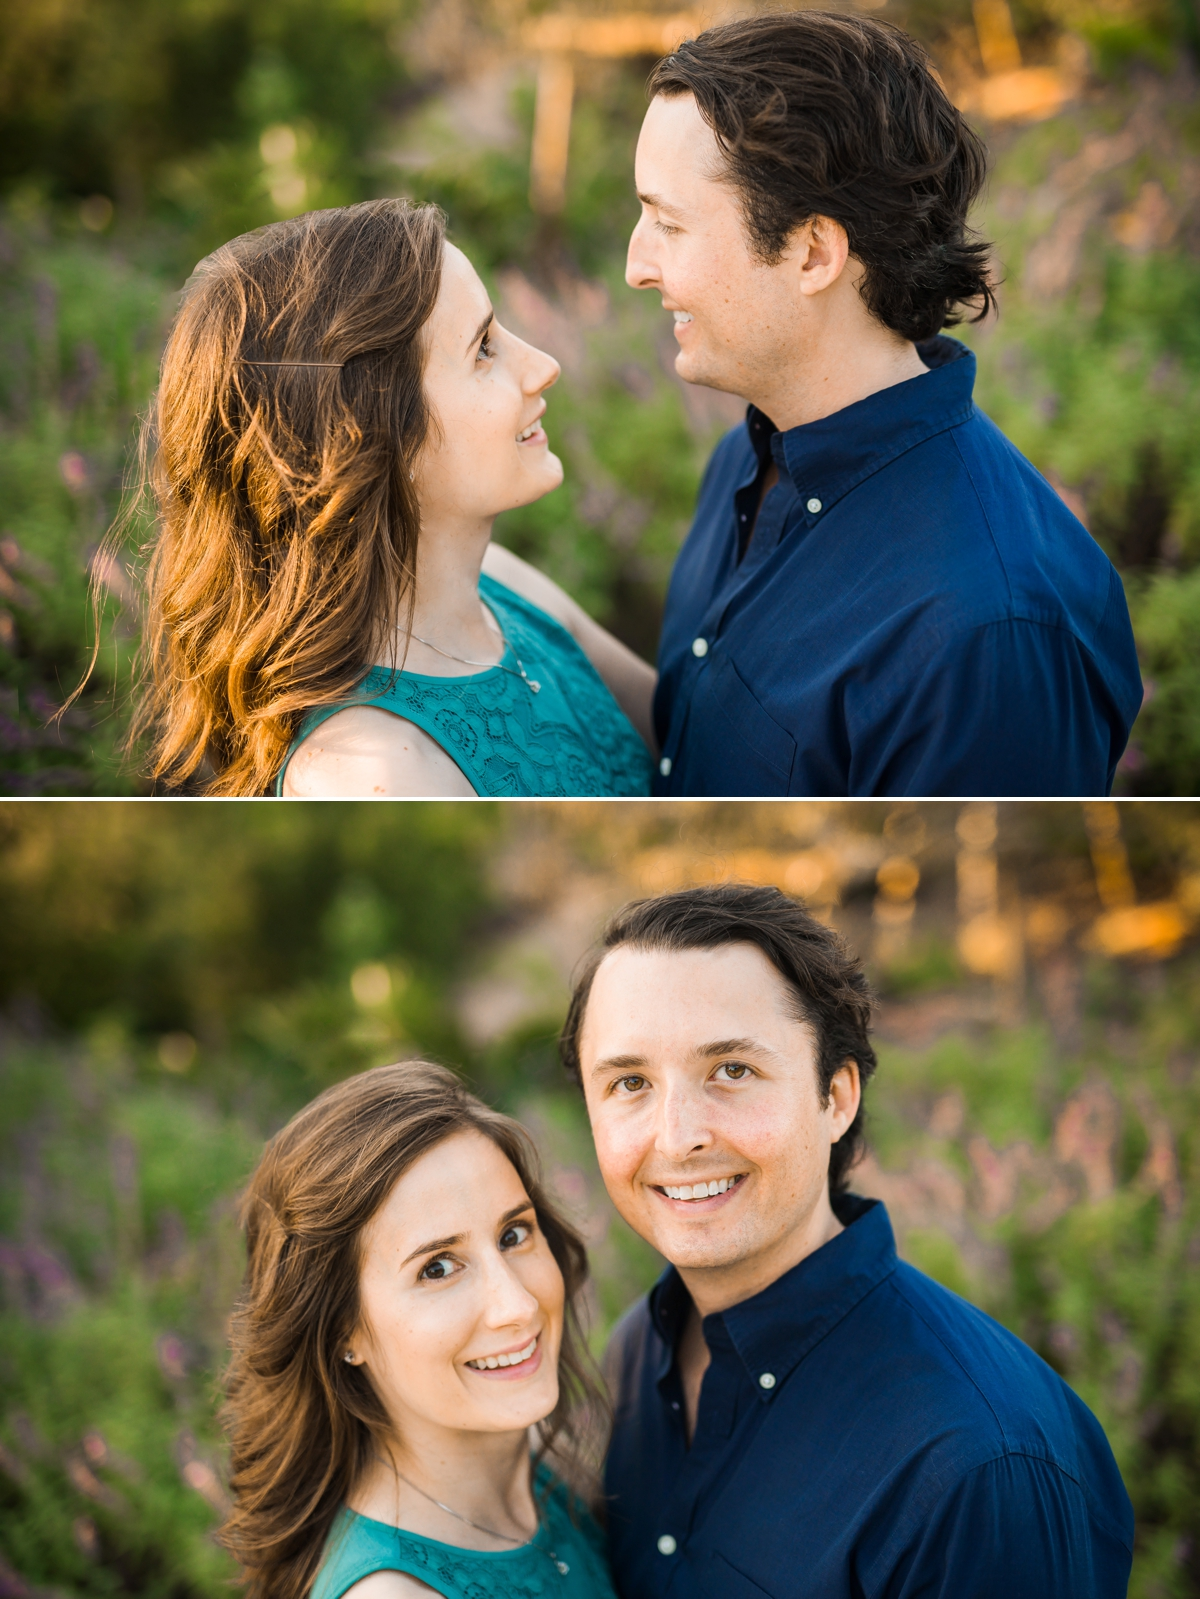 Engaged Couple looking at each other and the camera during engagement session at the Houston Botanic Gardens